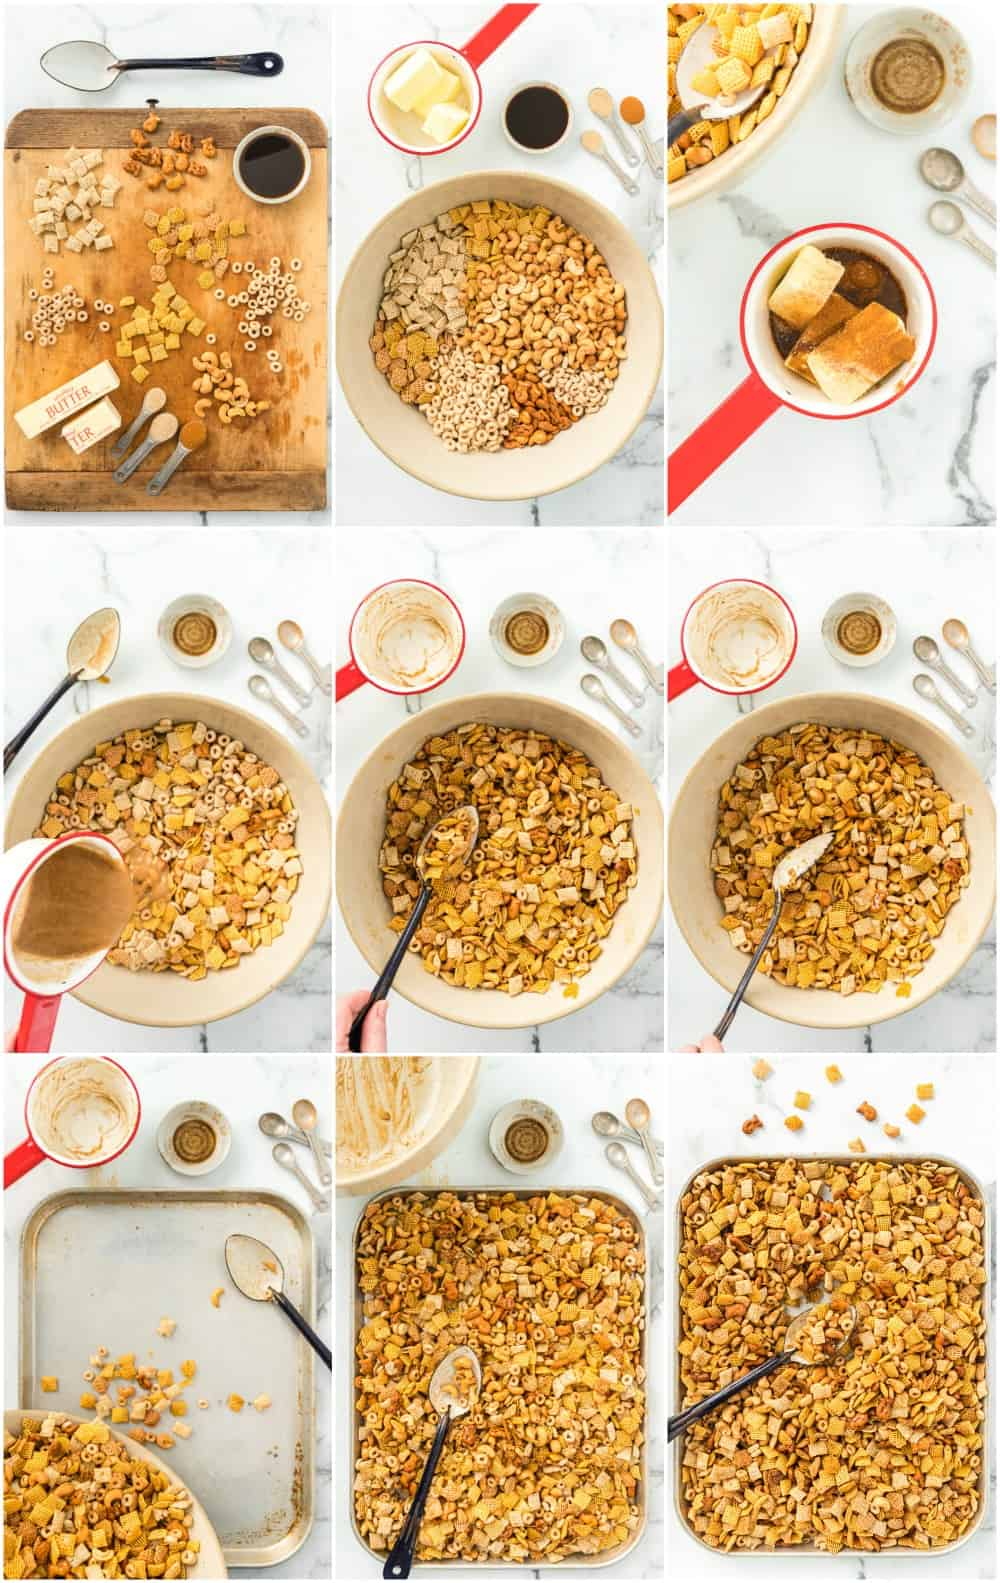 step by step photos of making chex mix - process shots